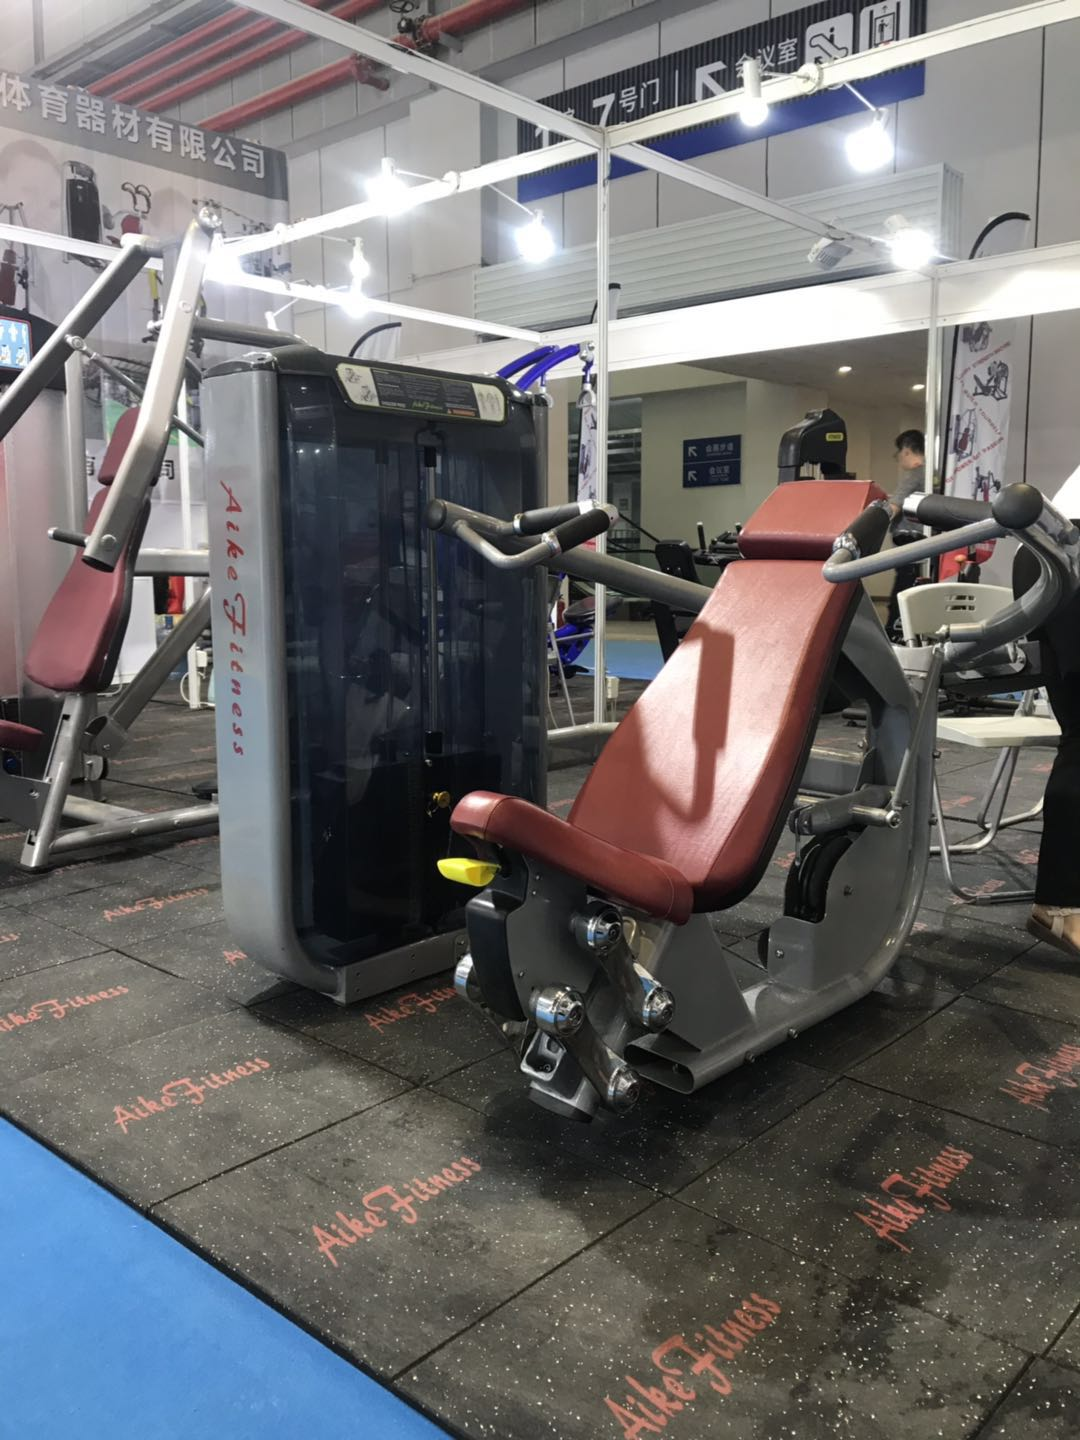 aikefitness in China sports show 2019